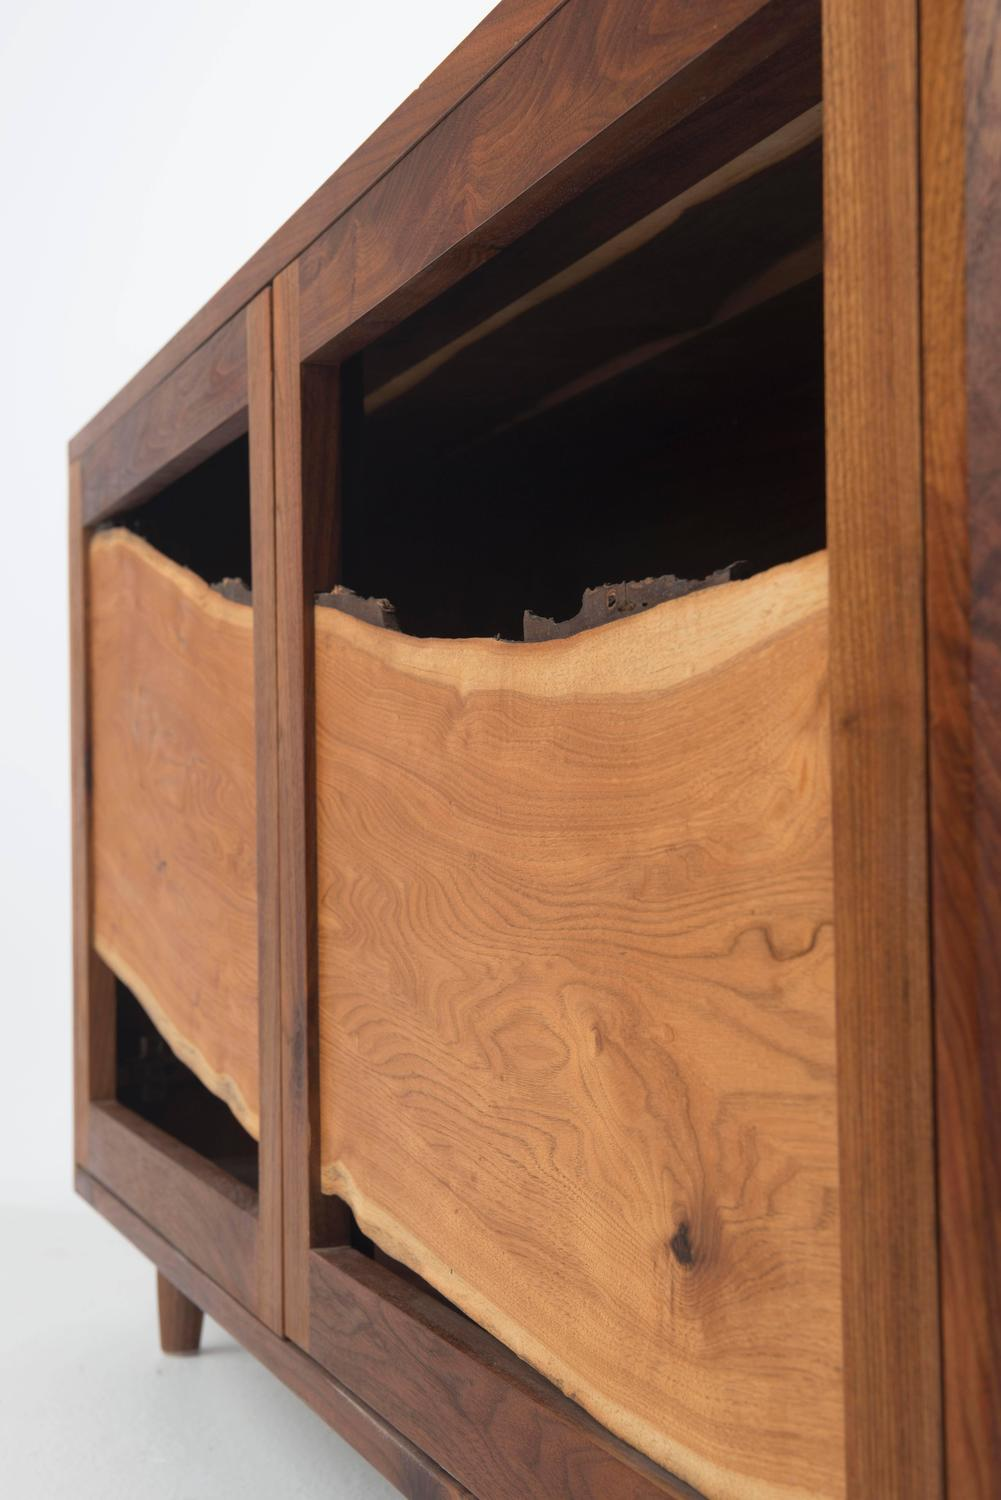 Black Walnut and Butternut Sweep Low Cabinet For Sale at 1stdibs